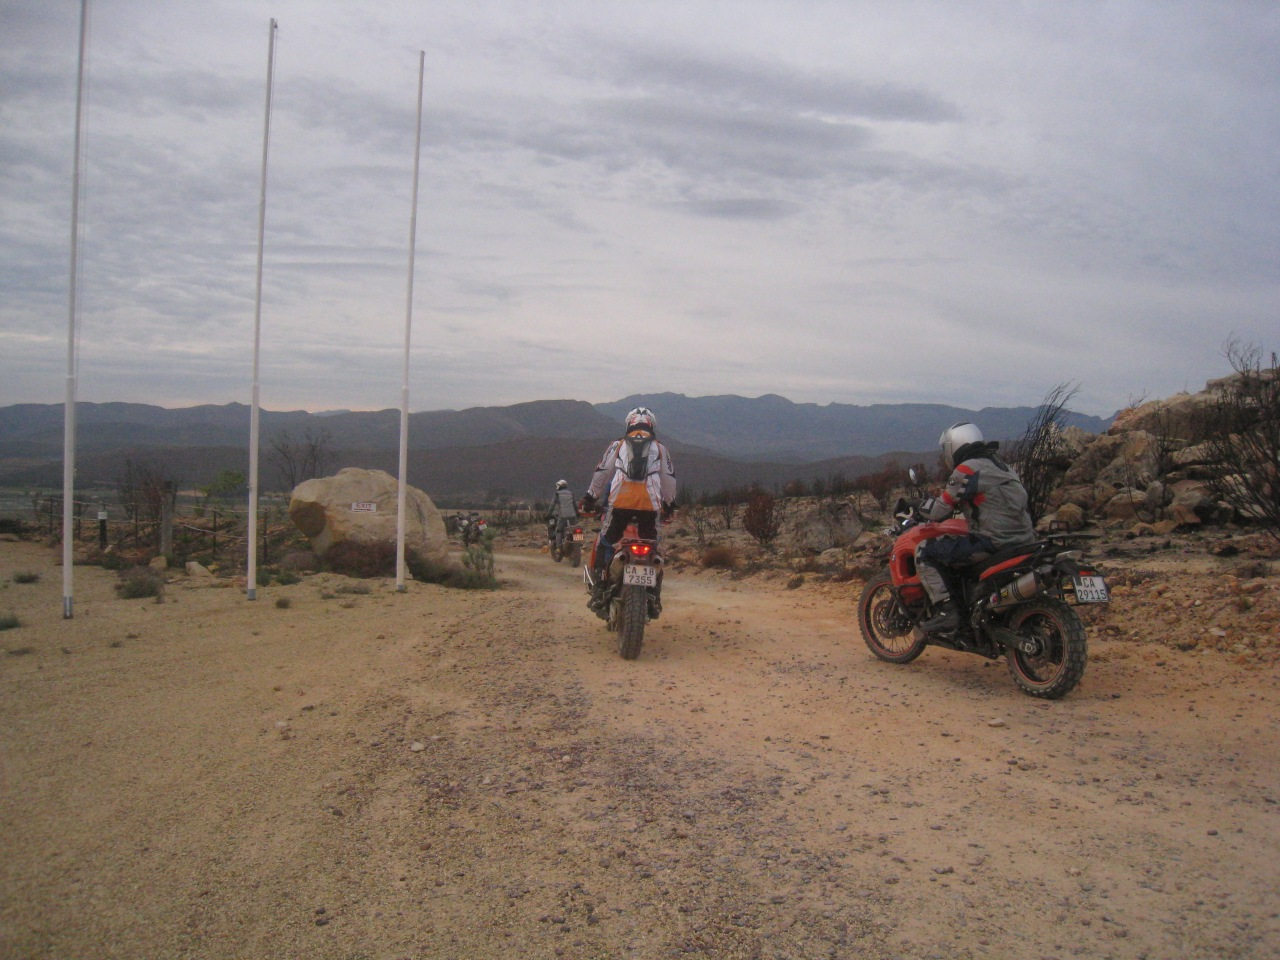 An assortment of big bikes. I was riding 650 KLR but most people were on KTM 990 Adventures, and BMW GSA1200s. One guy on old KTM Dakar rallye